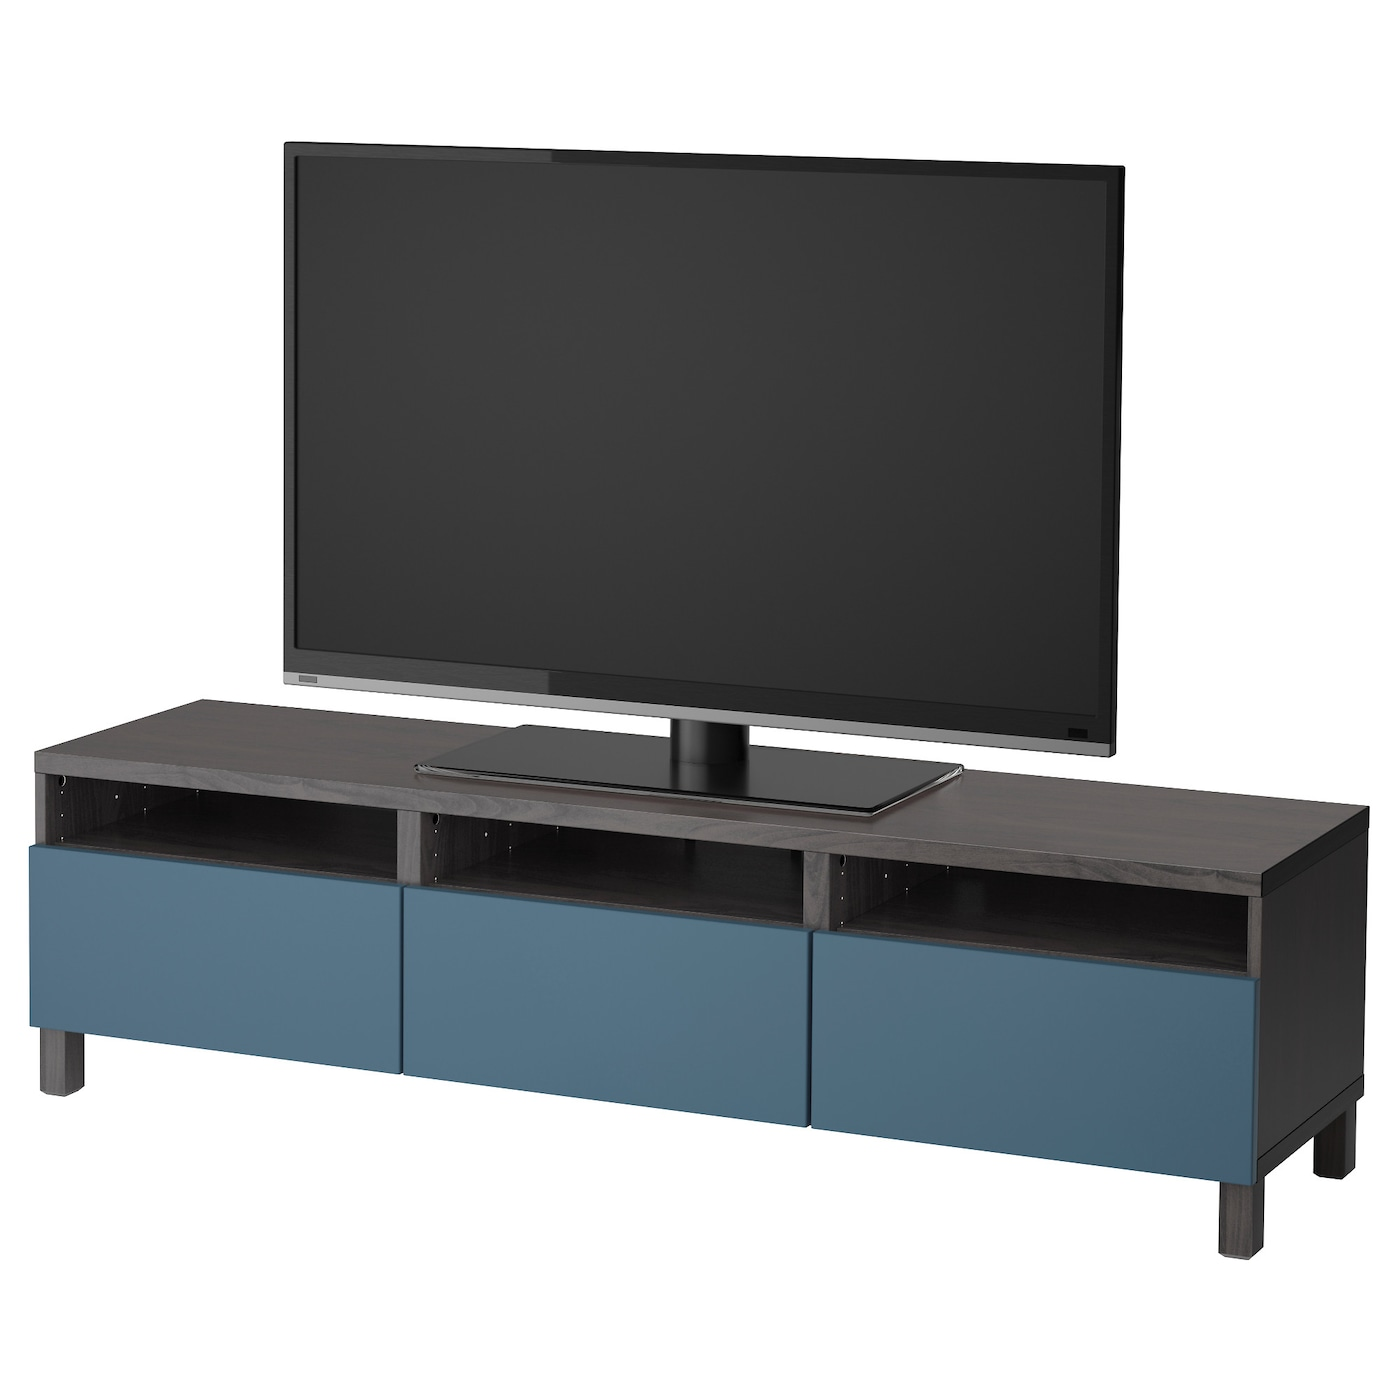 Best Tv Bench With Drawers Black Brown Valviken Dark Blue 180x40x48 Cm Ikea